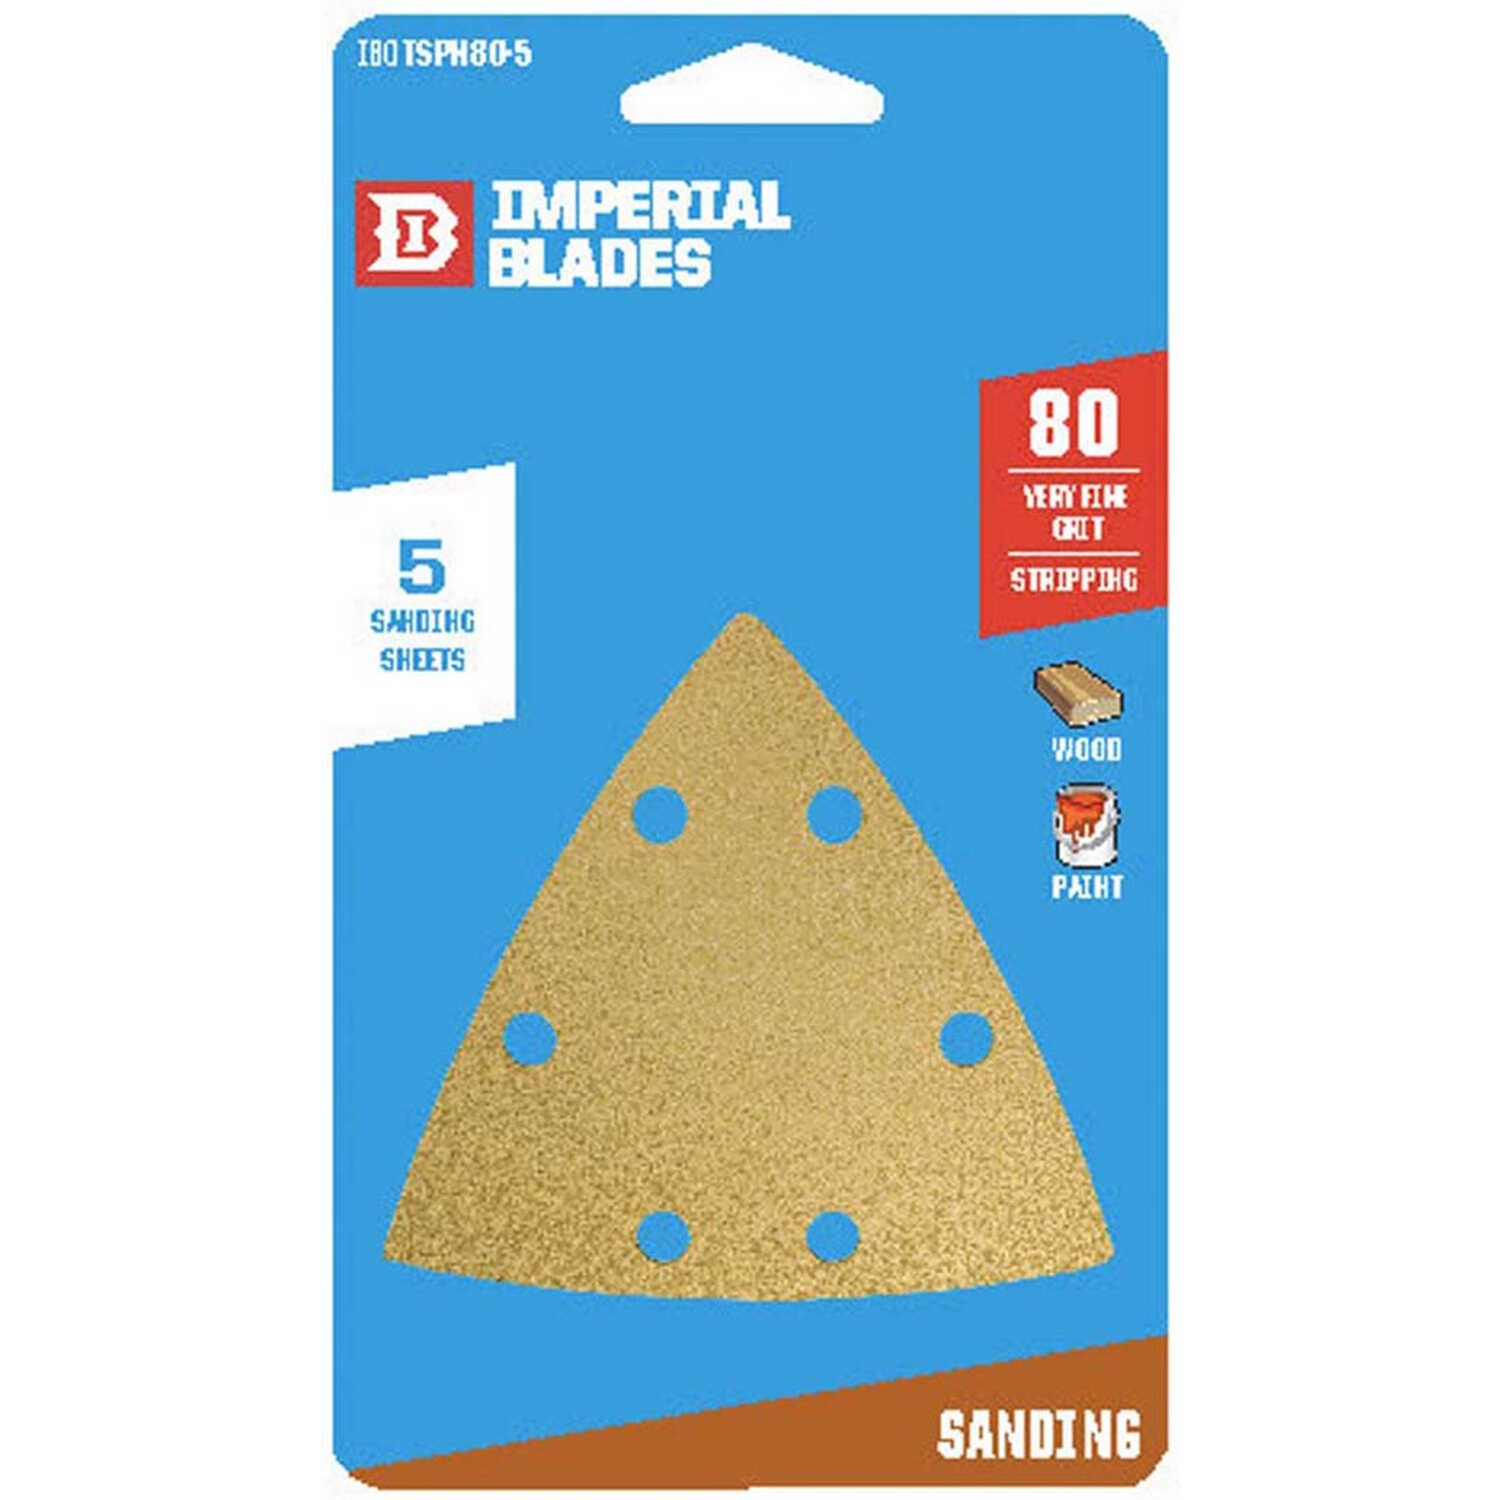 Imperial Blades  3 in. L x 2 in. W 80 Grit Coarse  Emery  Vacuum Hole Sandpaper  5 pk